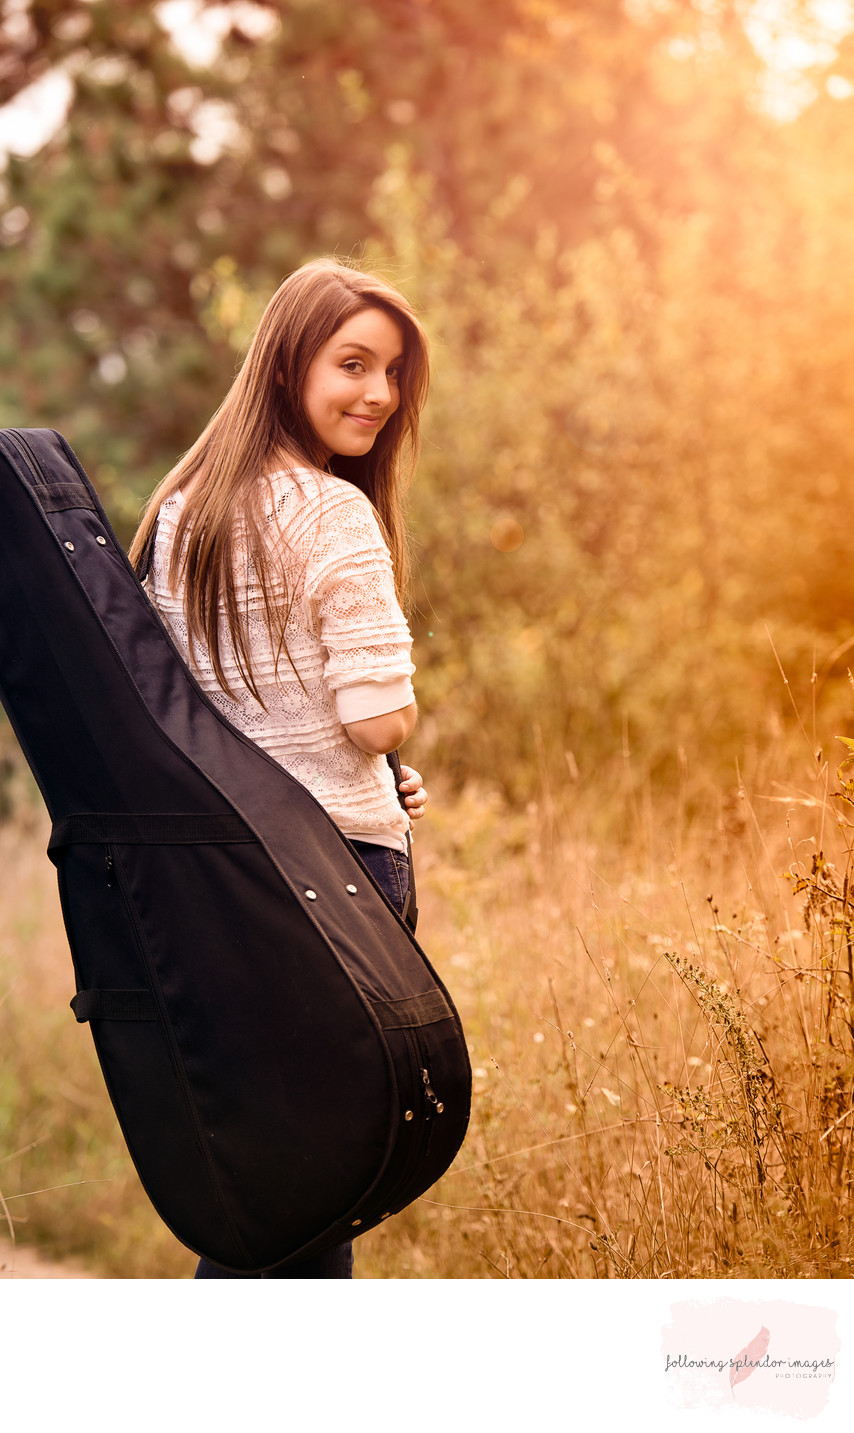 Golden Hour Girl With Guitar Senior Photography